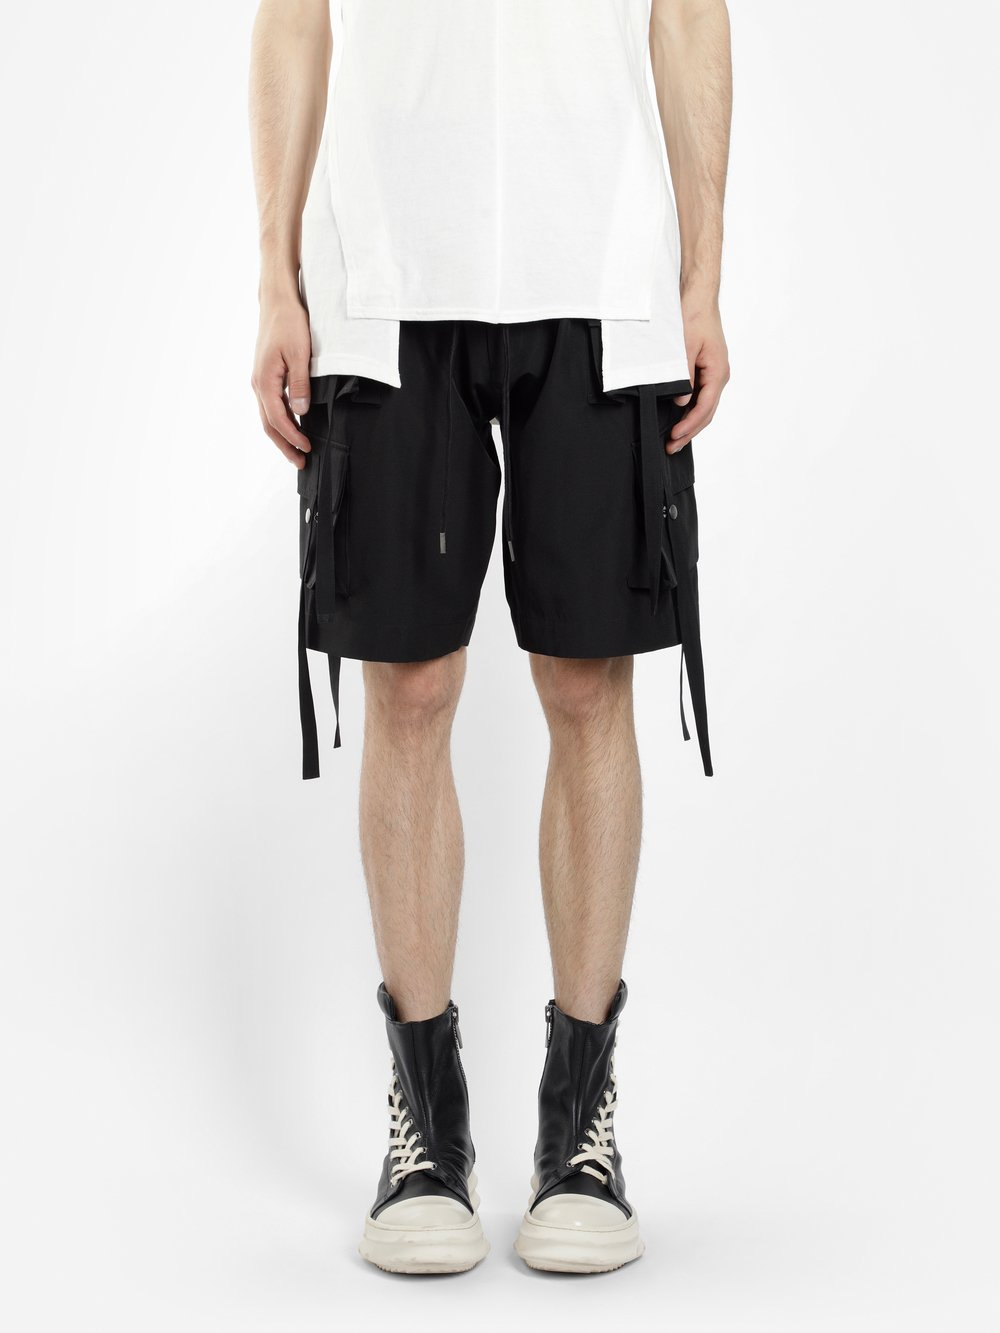 D.GNAK BY KANG.D MEN'S BLACK CARGO SHORTS